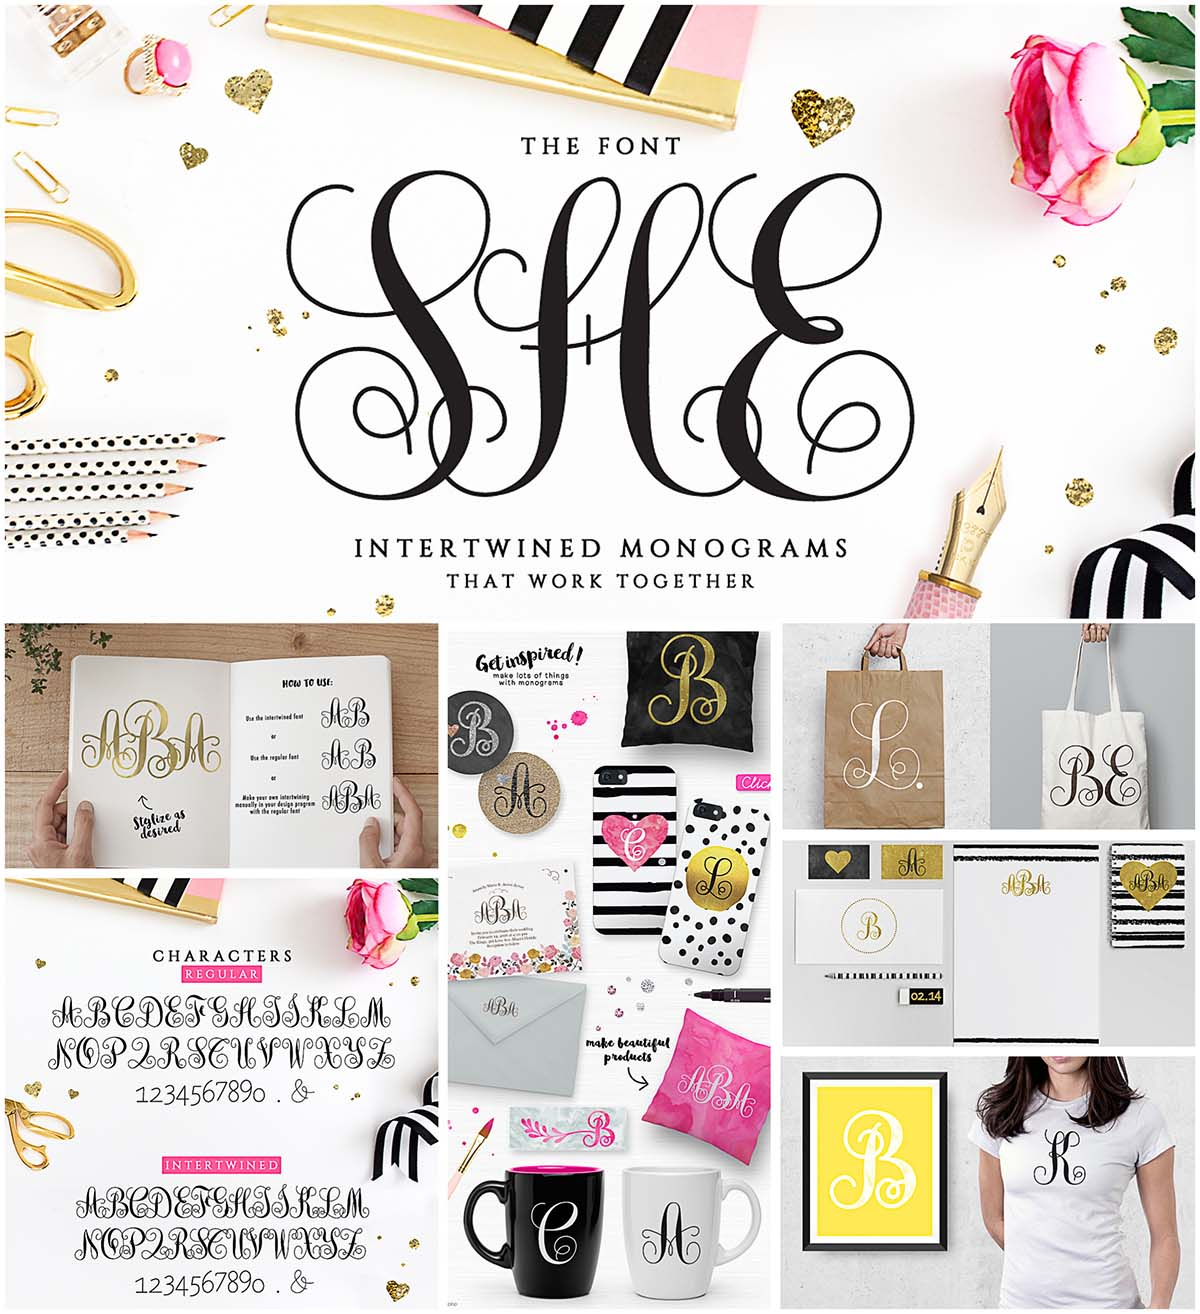 Monogram She font intertwined